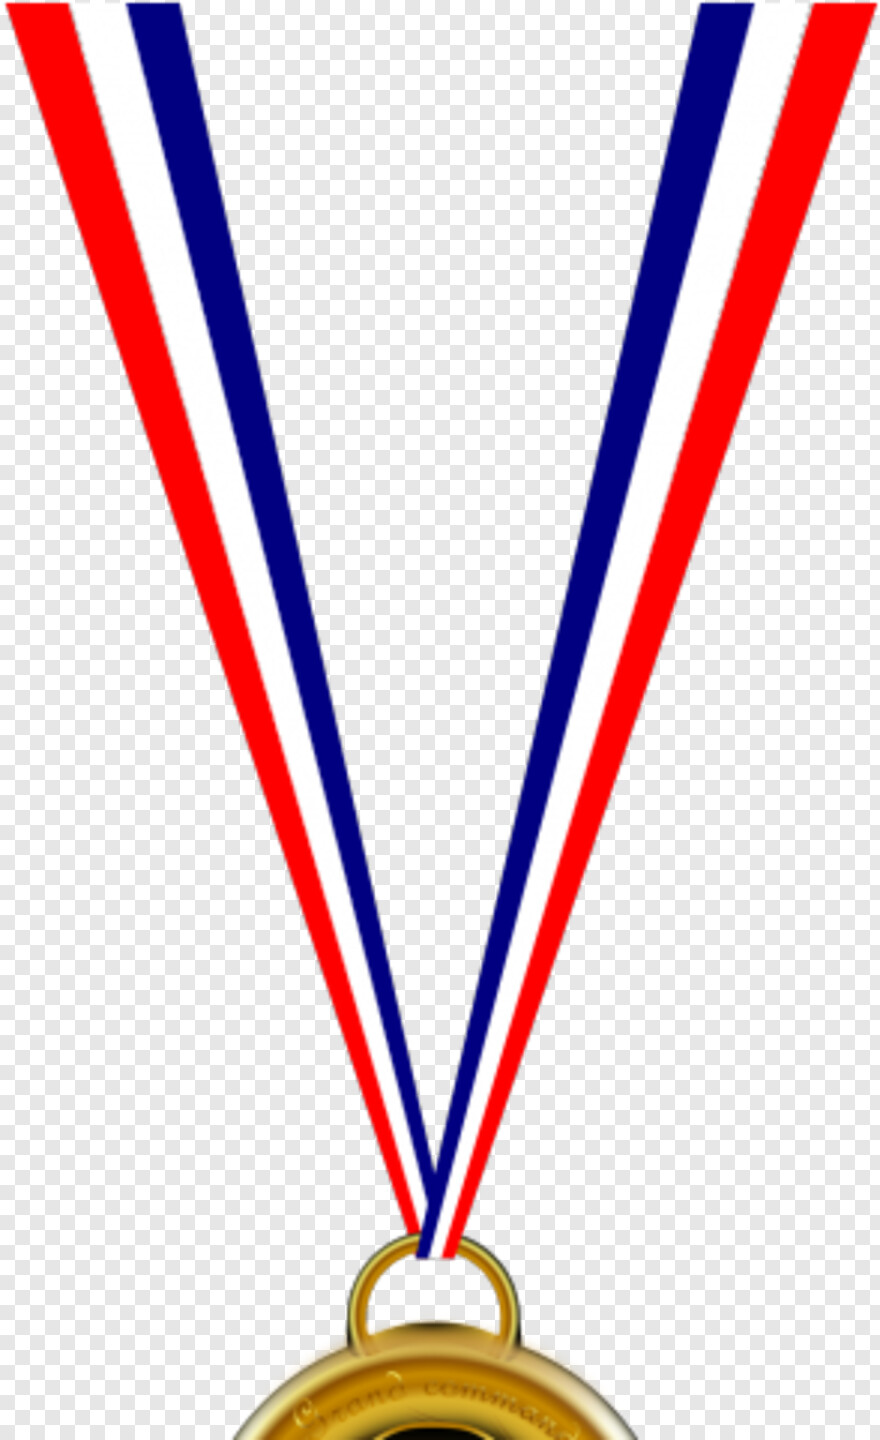 Free Gold Medal Clipart, Download Free Clip Art, Free Clip Art on Clipart  Library